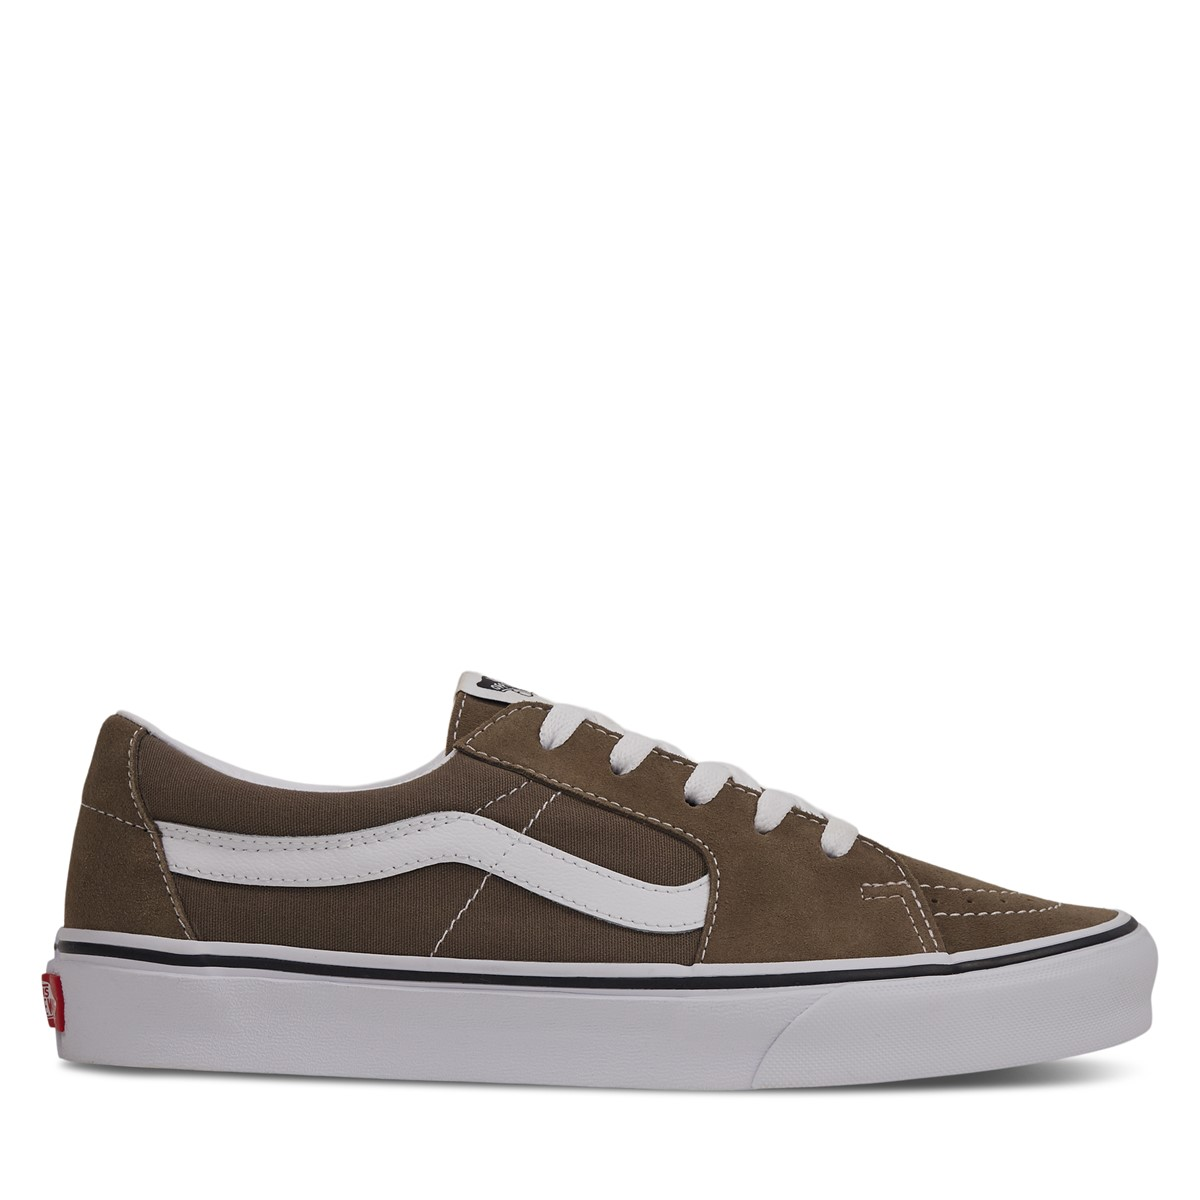 Sk8-Low Sneakers in Taupe/White